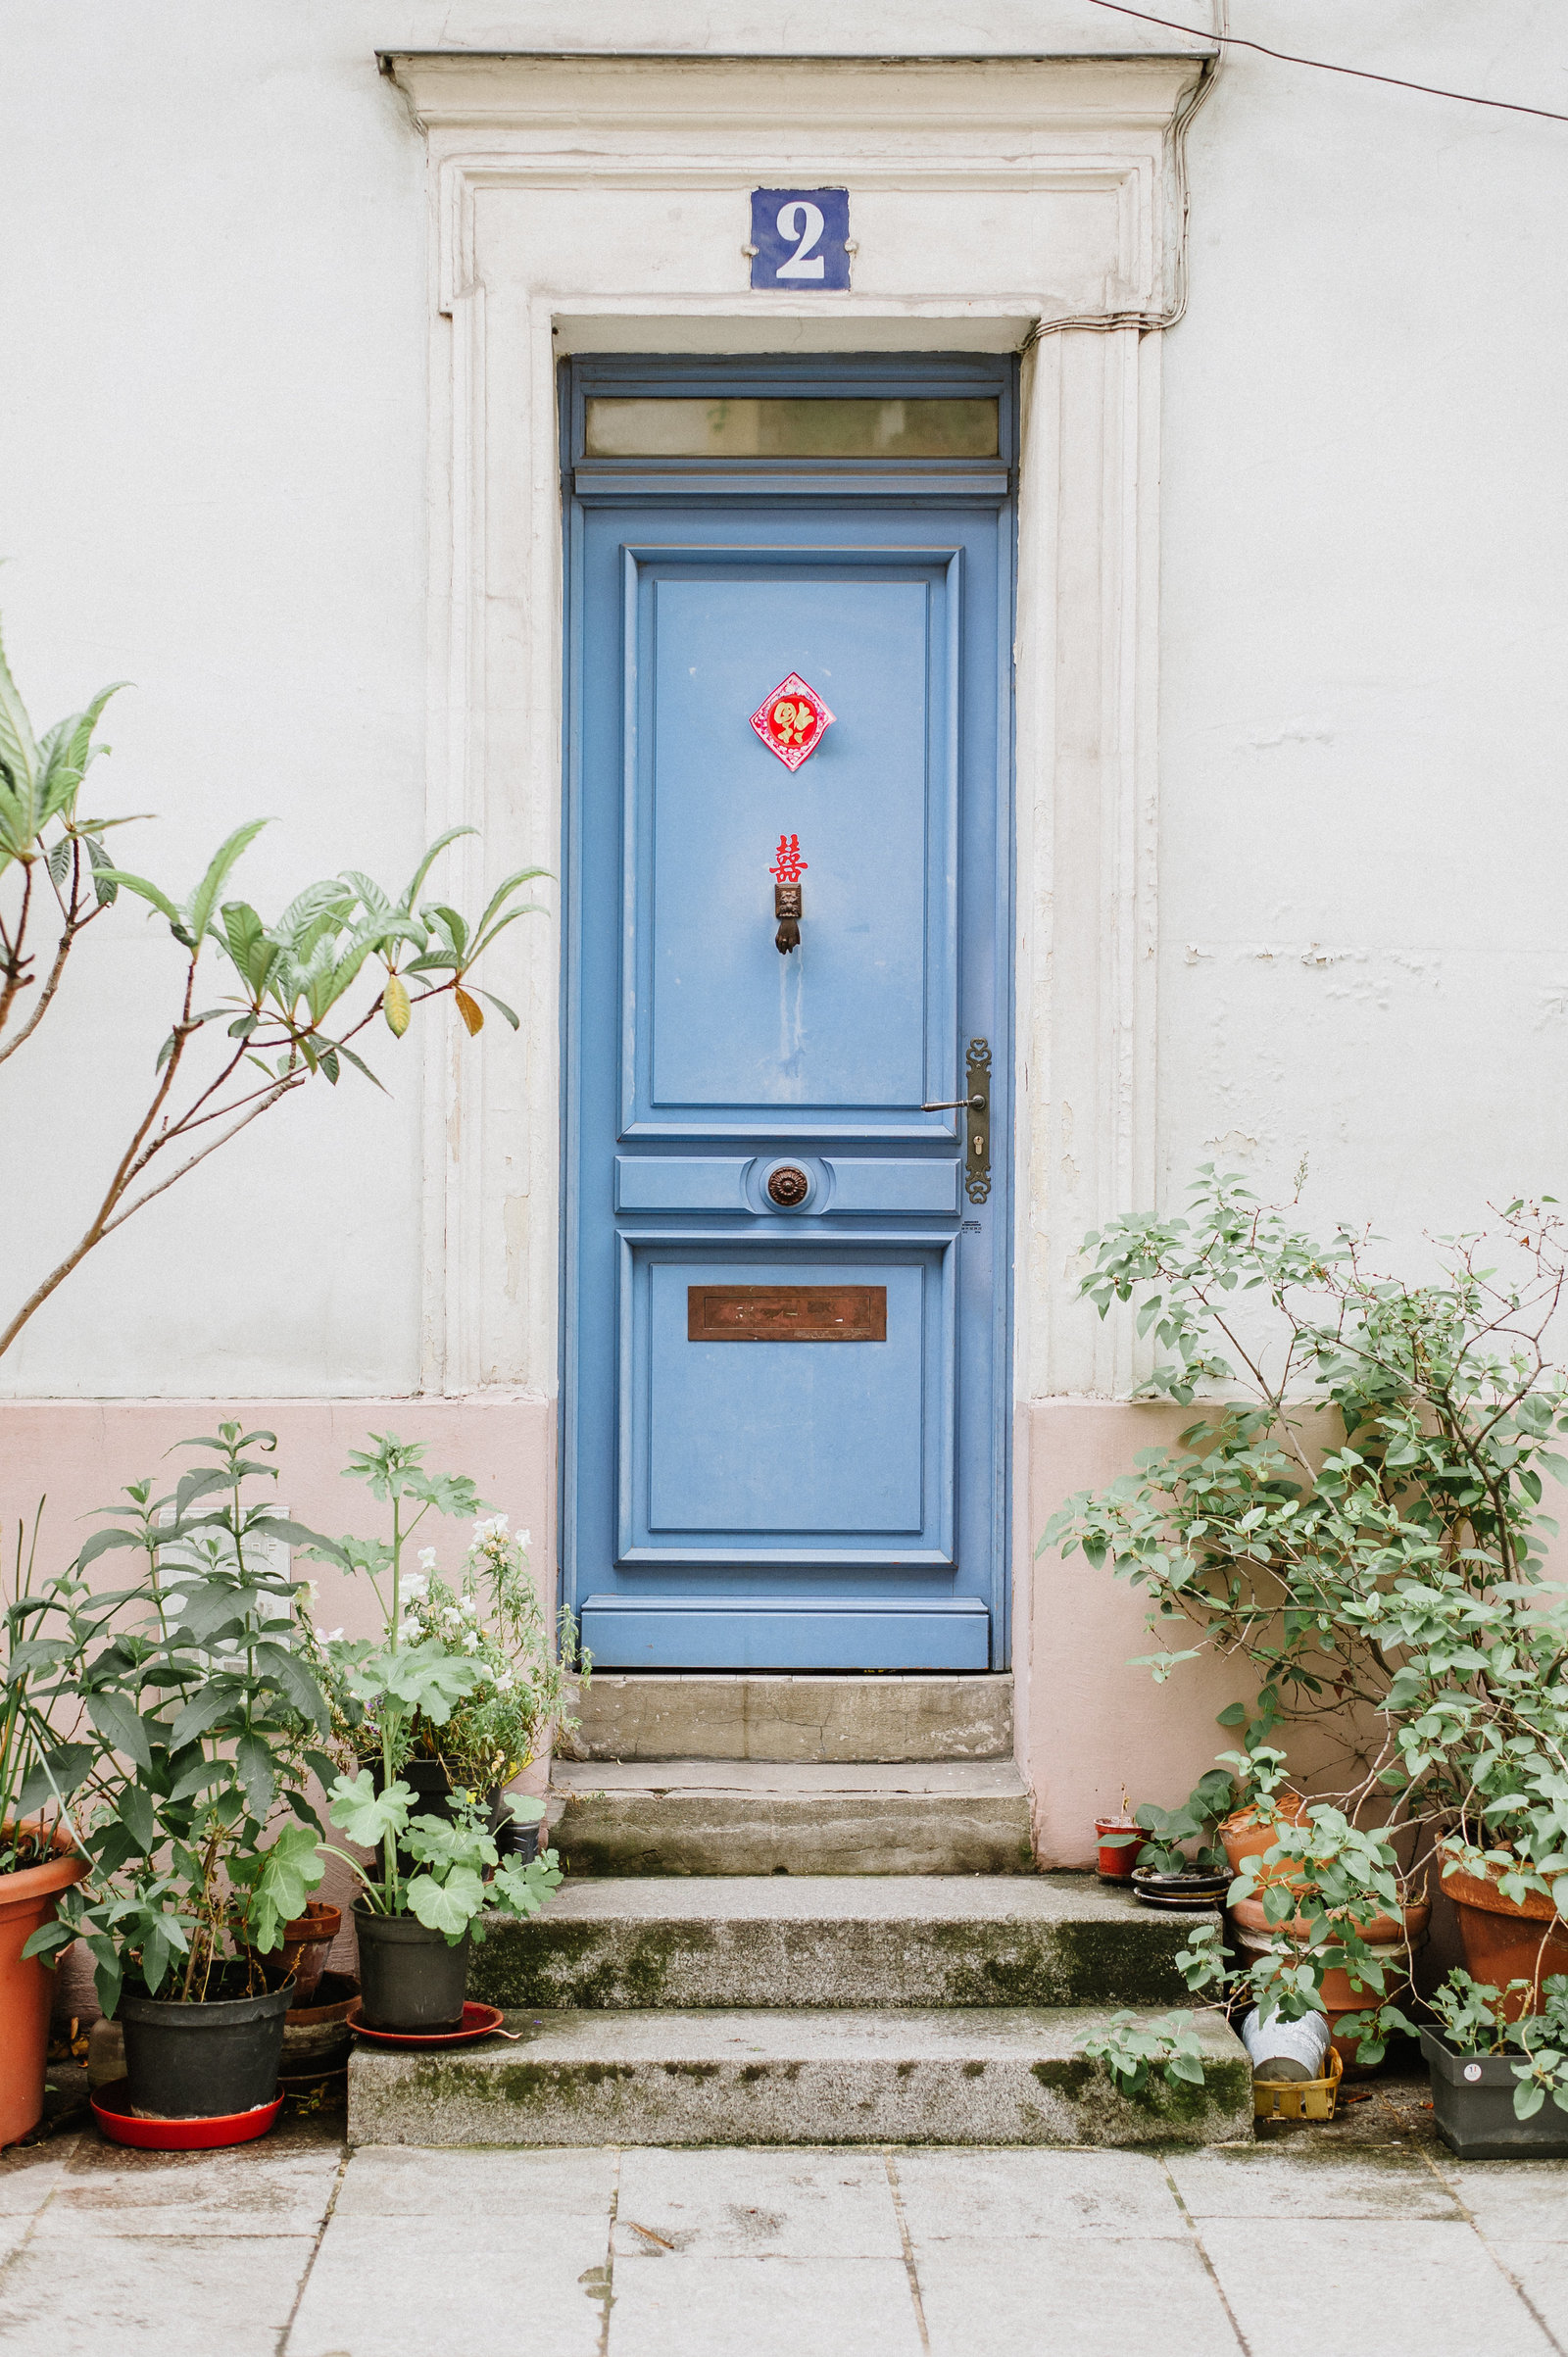 blue-door-paris-rue-cremieux-photo